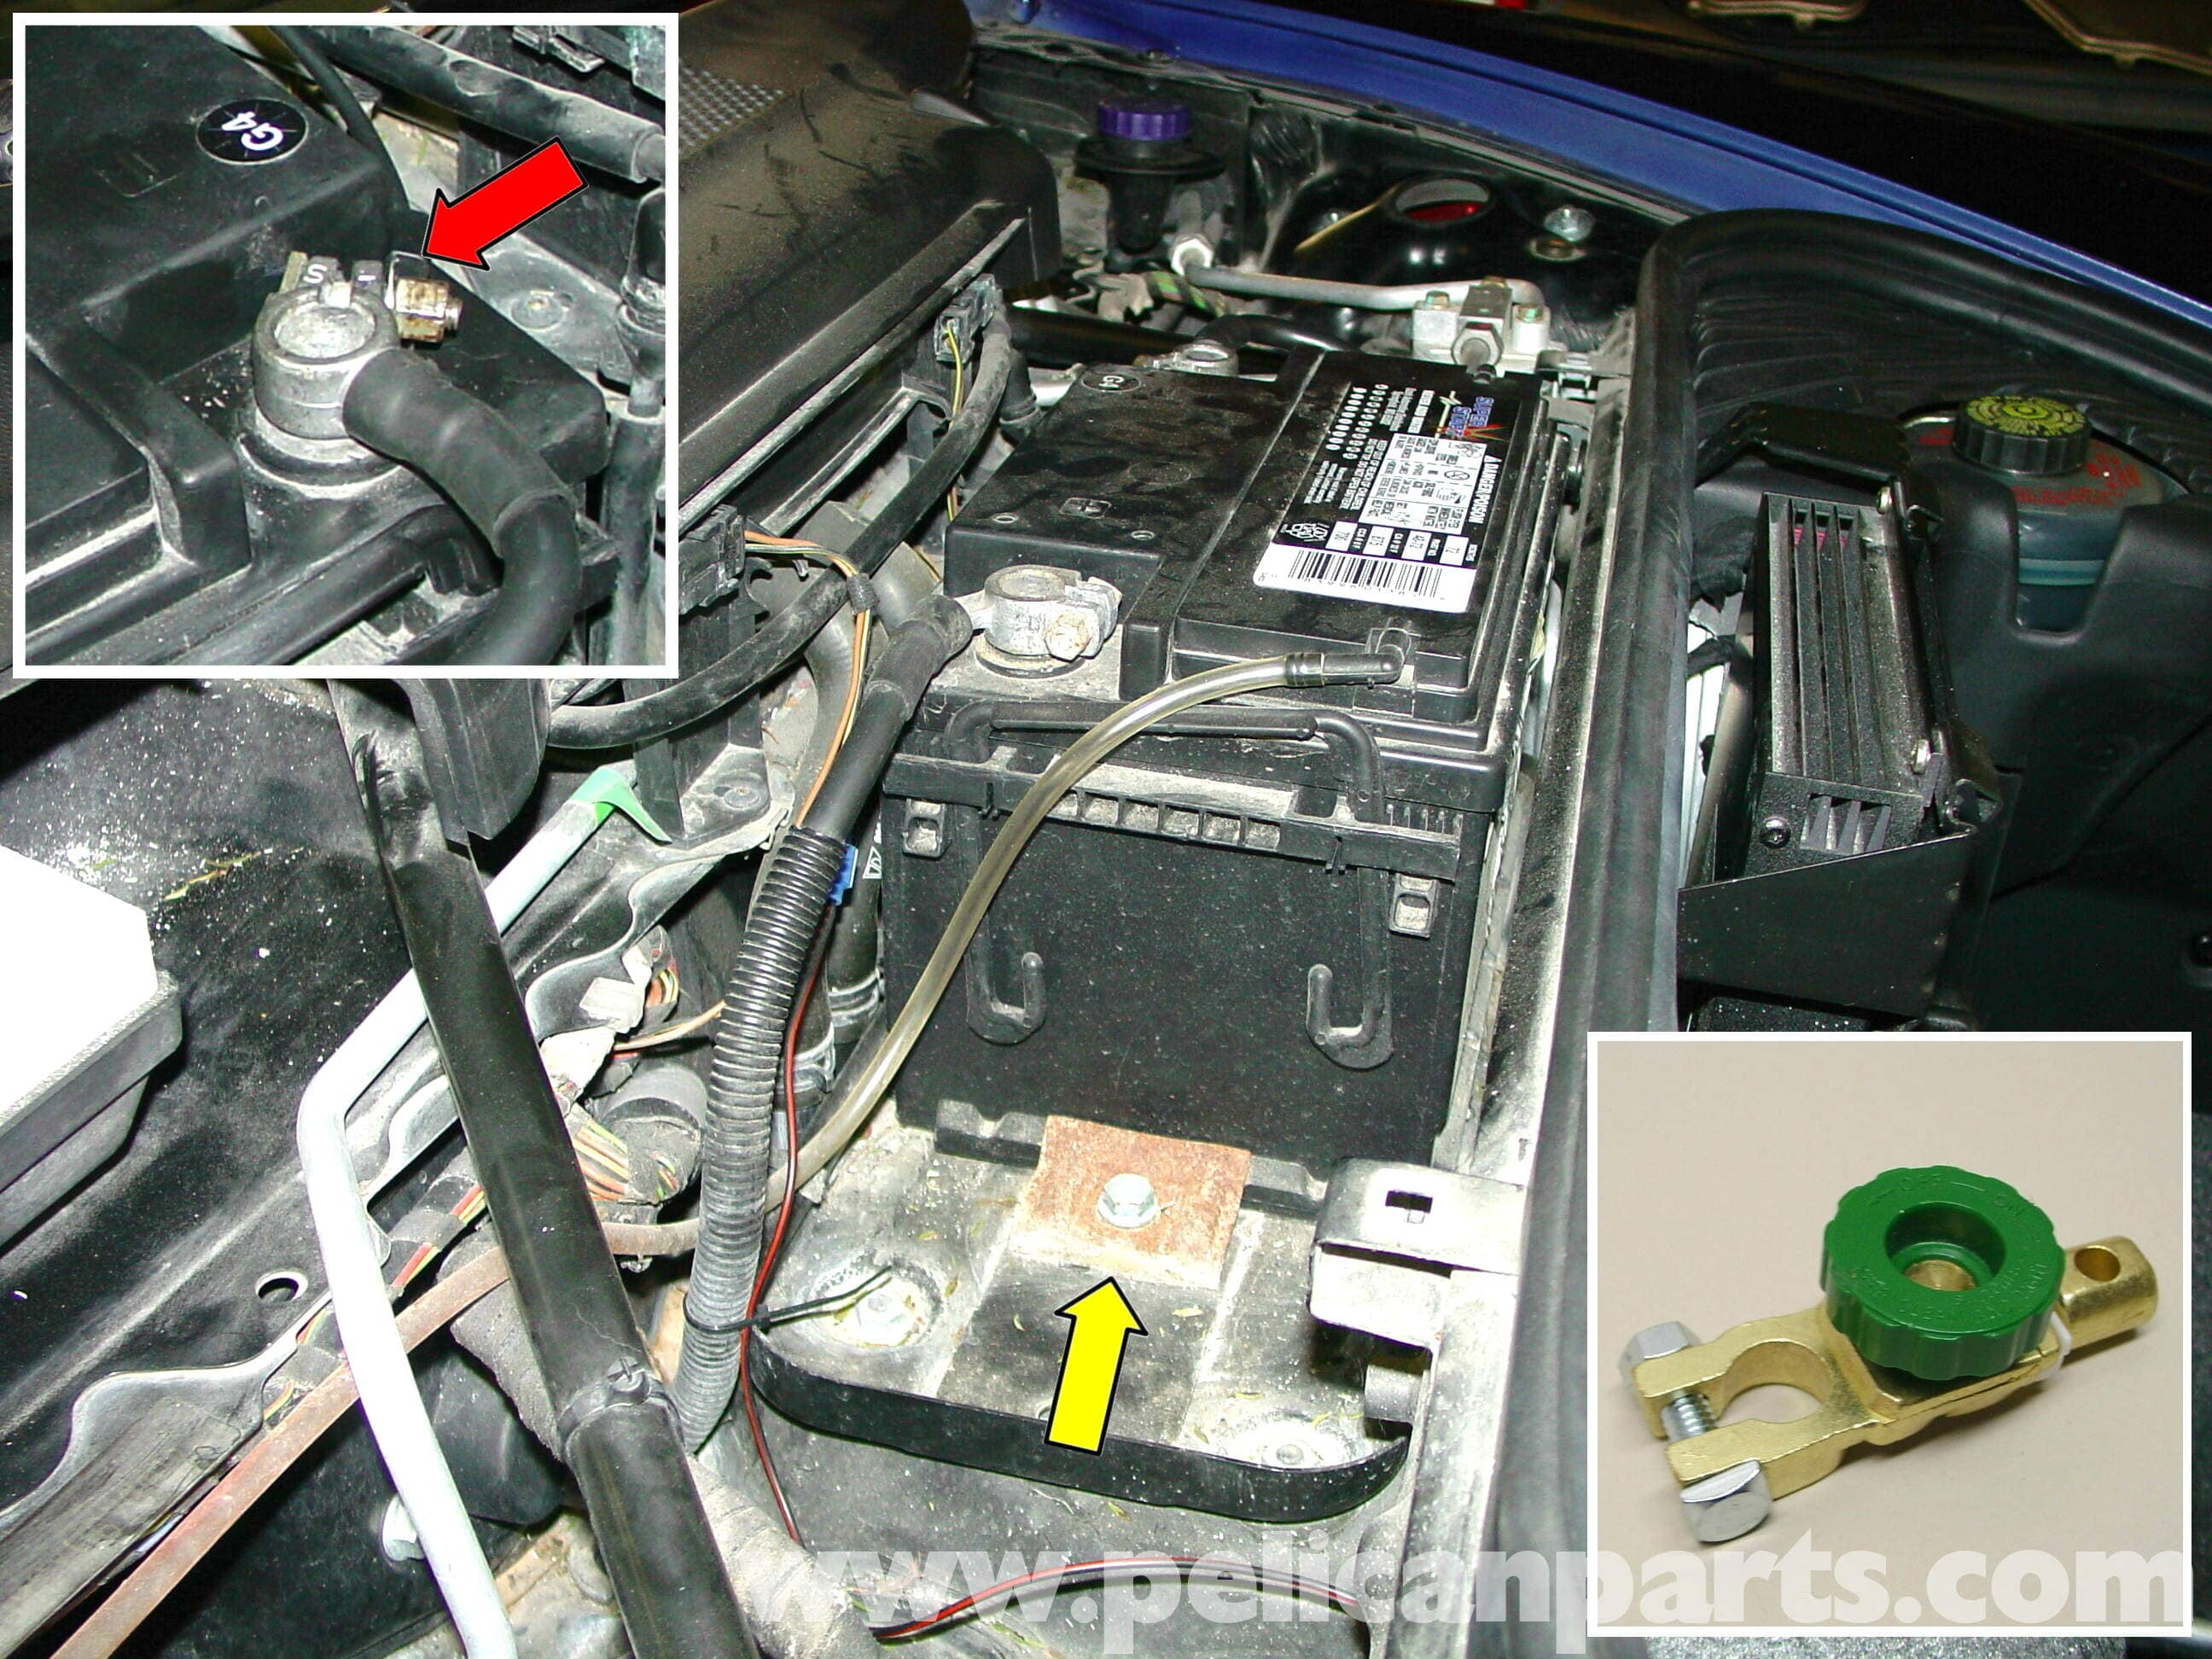 Porsche 911 Carrera Battery Replacement And Trickle Charger 2000 Boxster Engine Diagram Large Image Extra